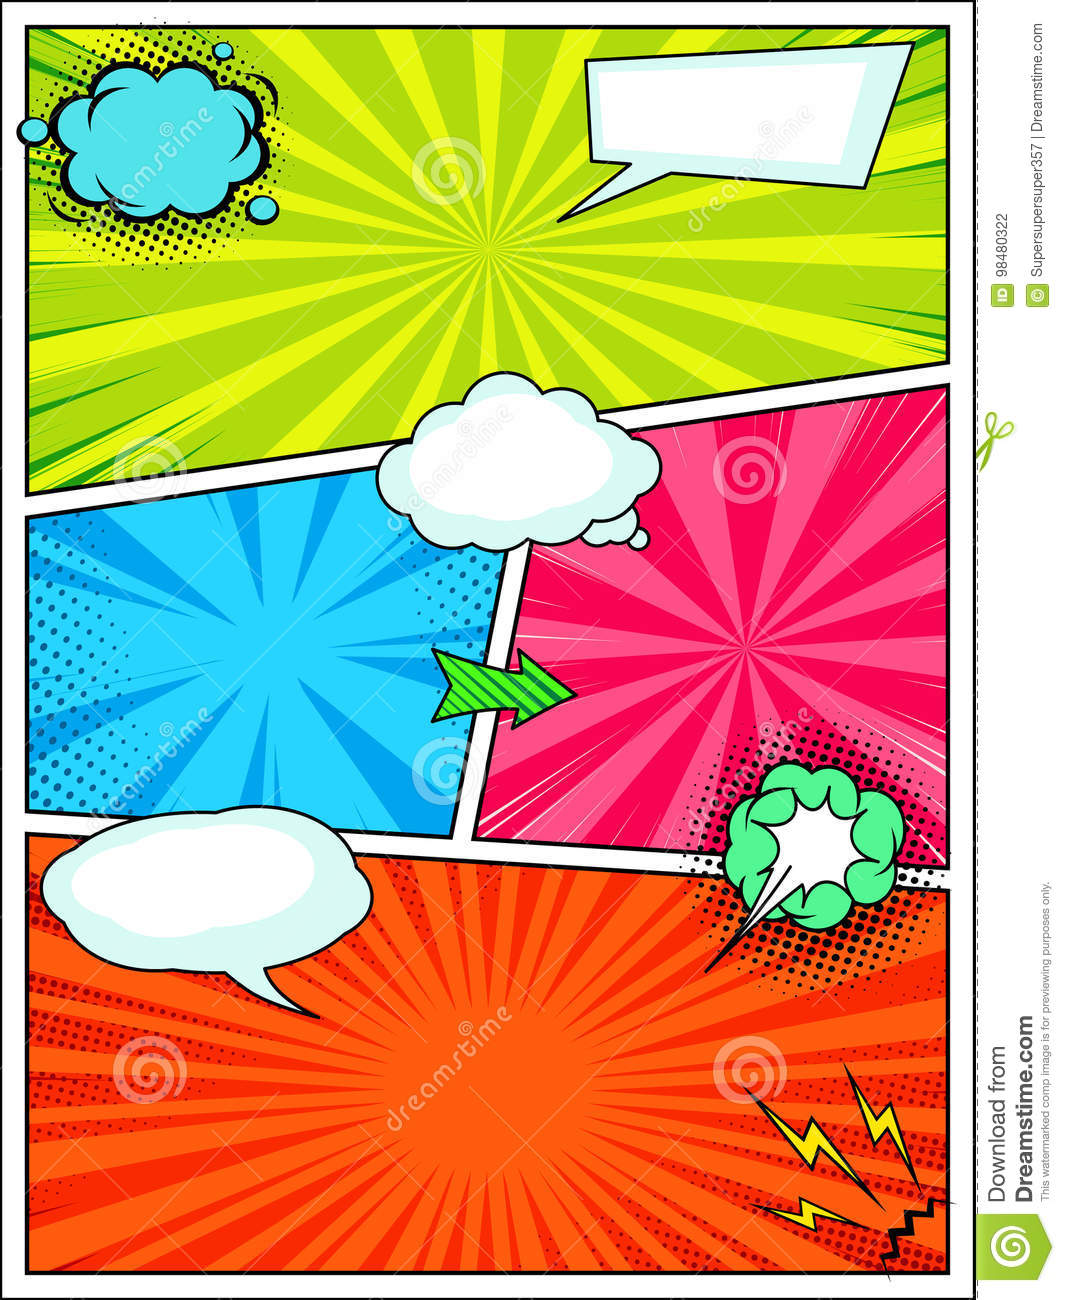 Comic book style background template pop art poster stock vector comic book style background template pop art poster toneelgroepblik Images